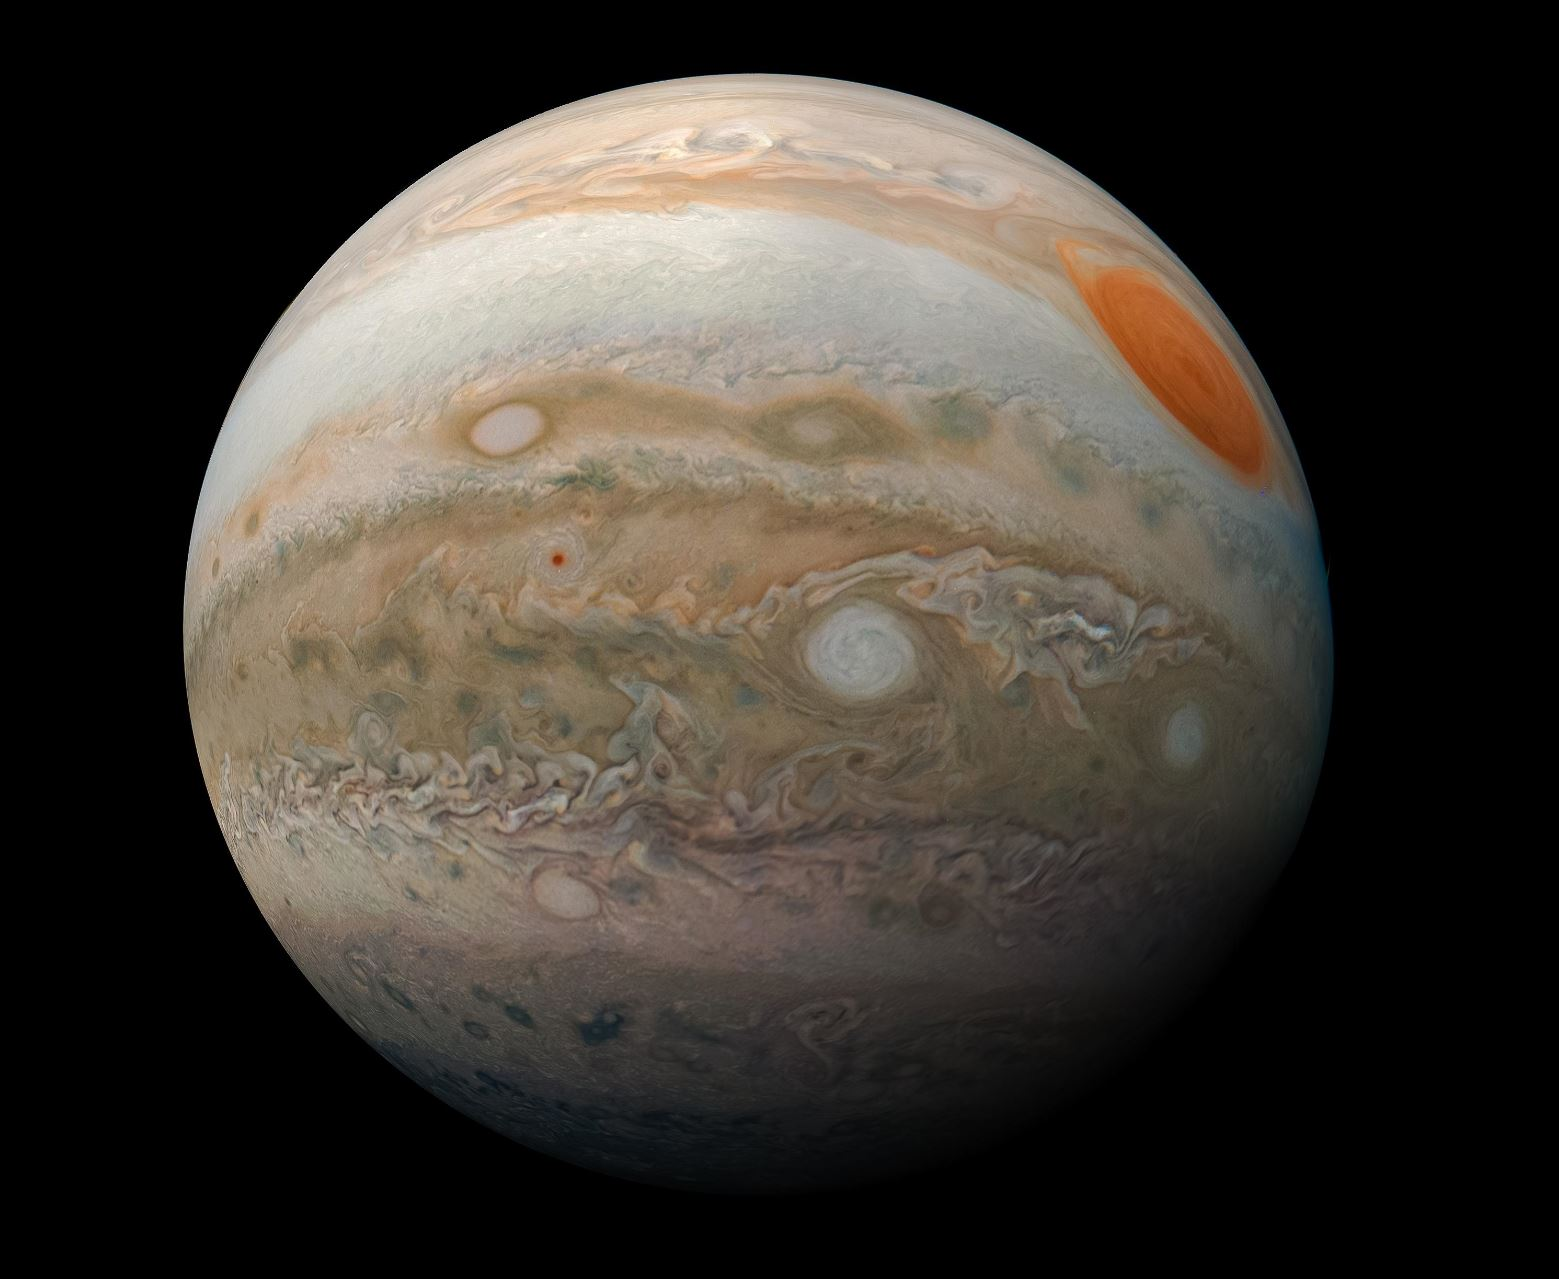 Billions of years ago, Jupiter might have swallowed an entire planet ten times larger than Earth!